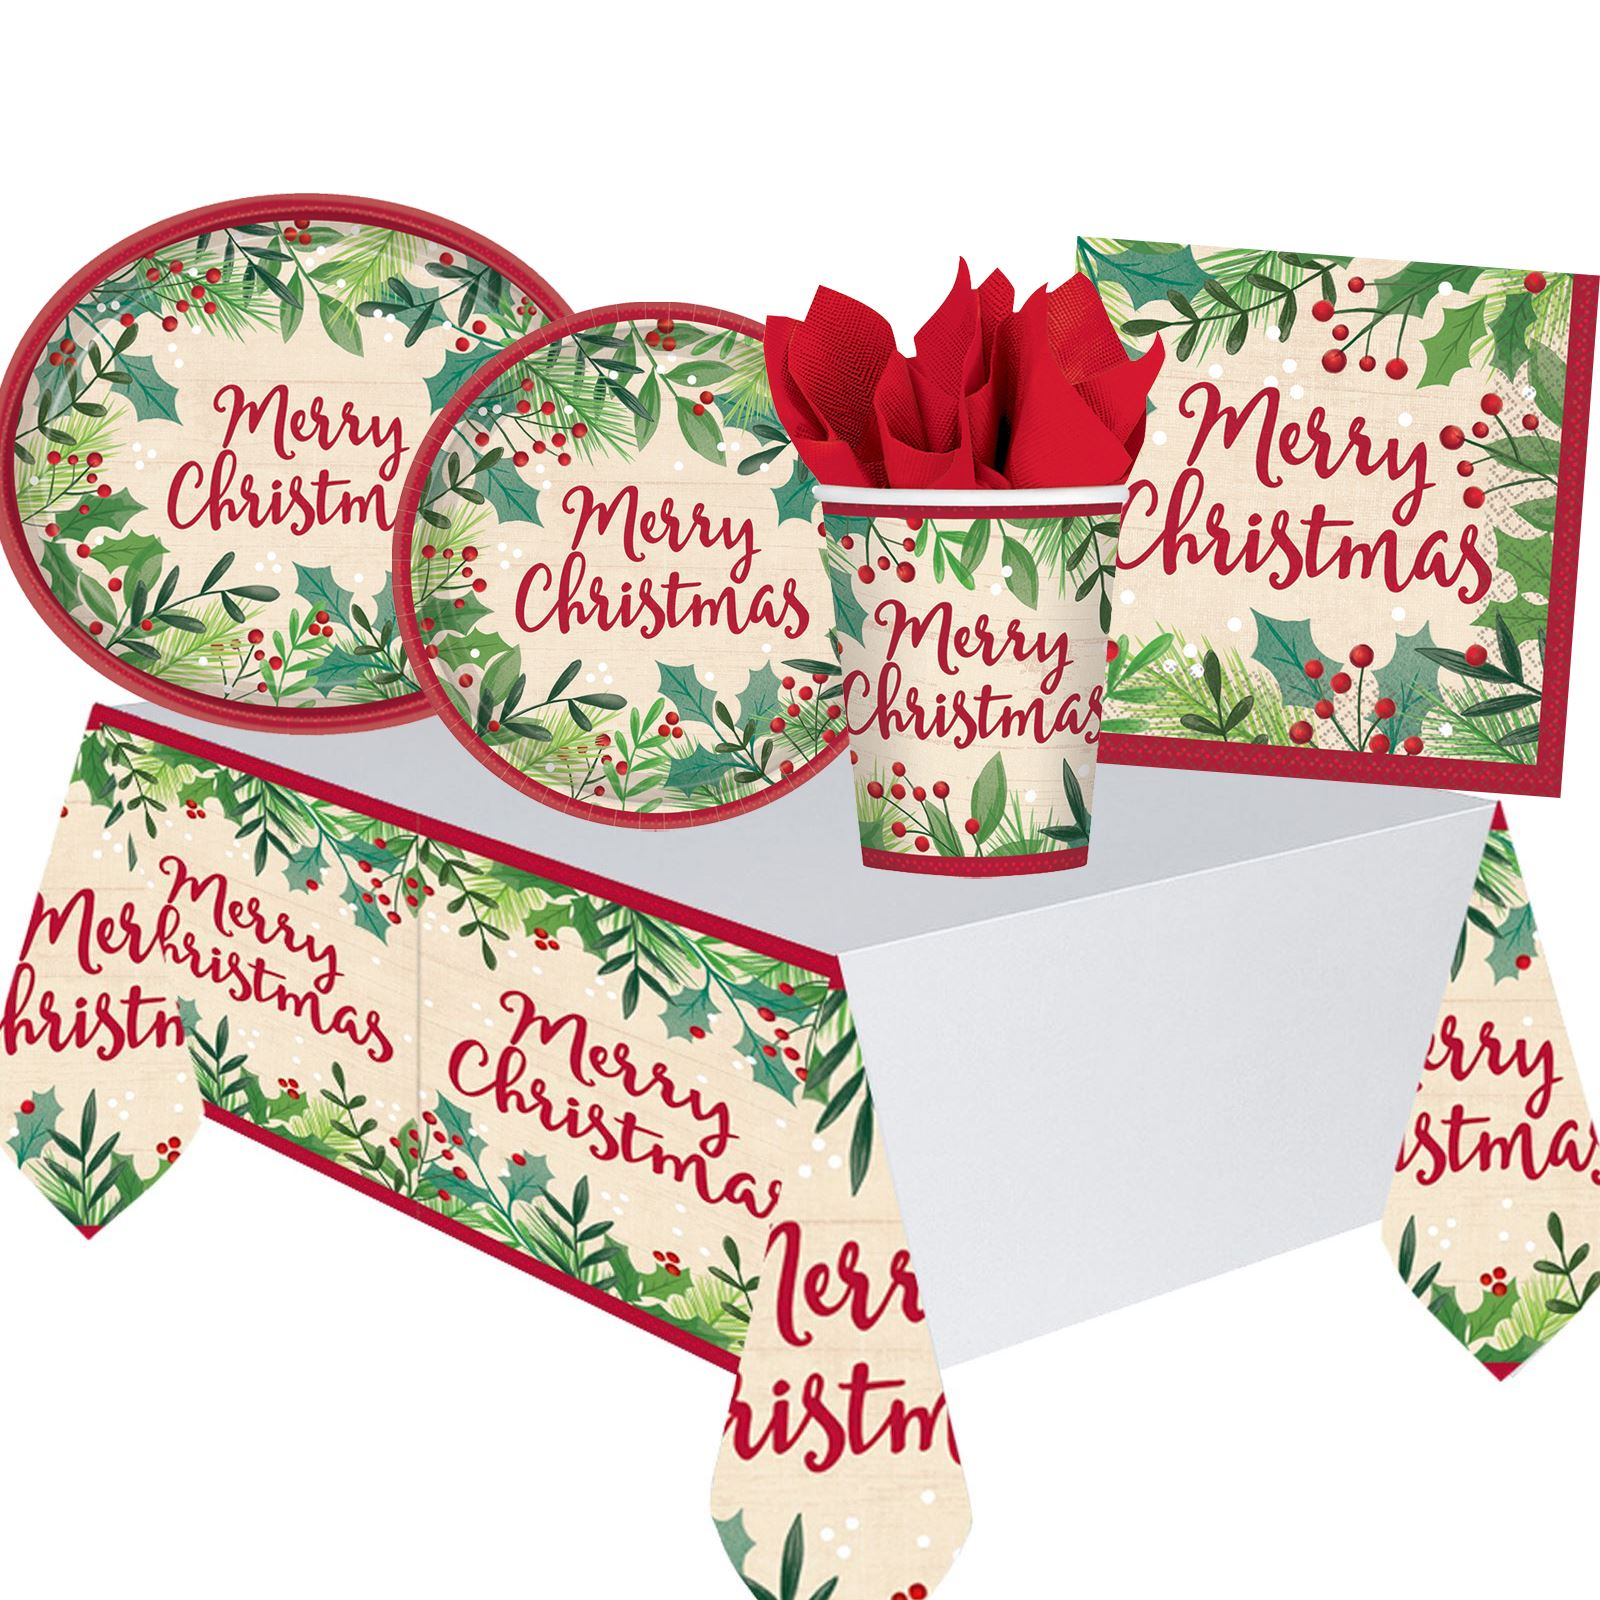 Christmas Paper Plates.Details About Traditional Christmas Party Tableware Paper Plates Napkins Cups Tablecover